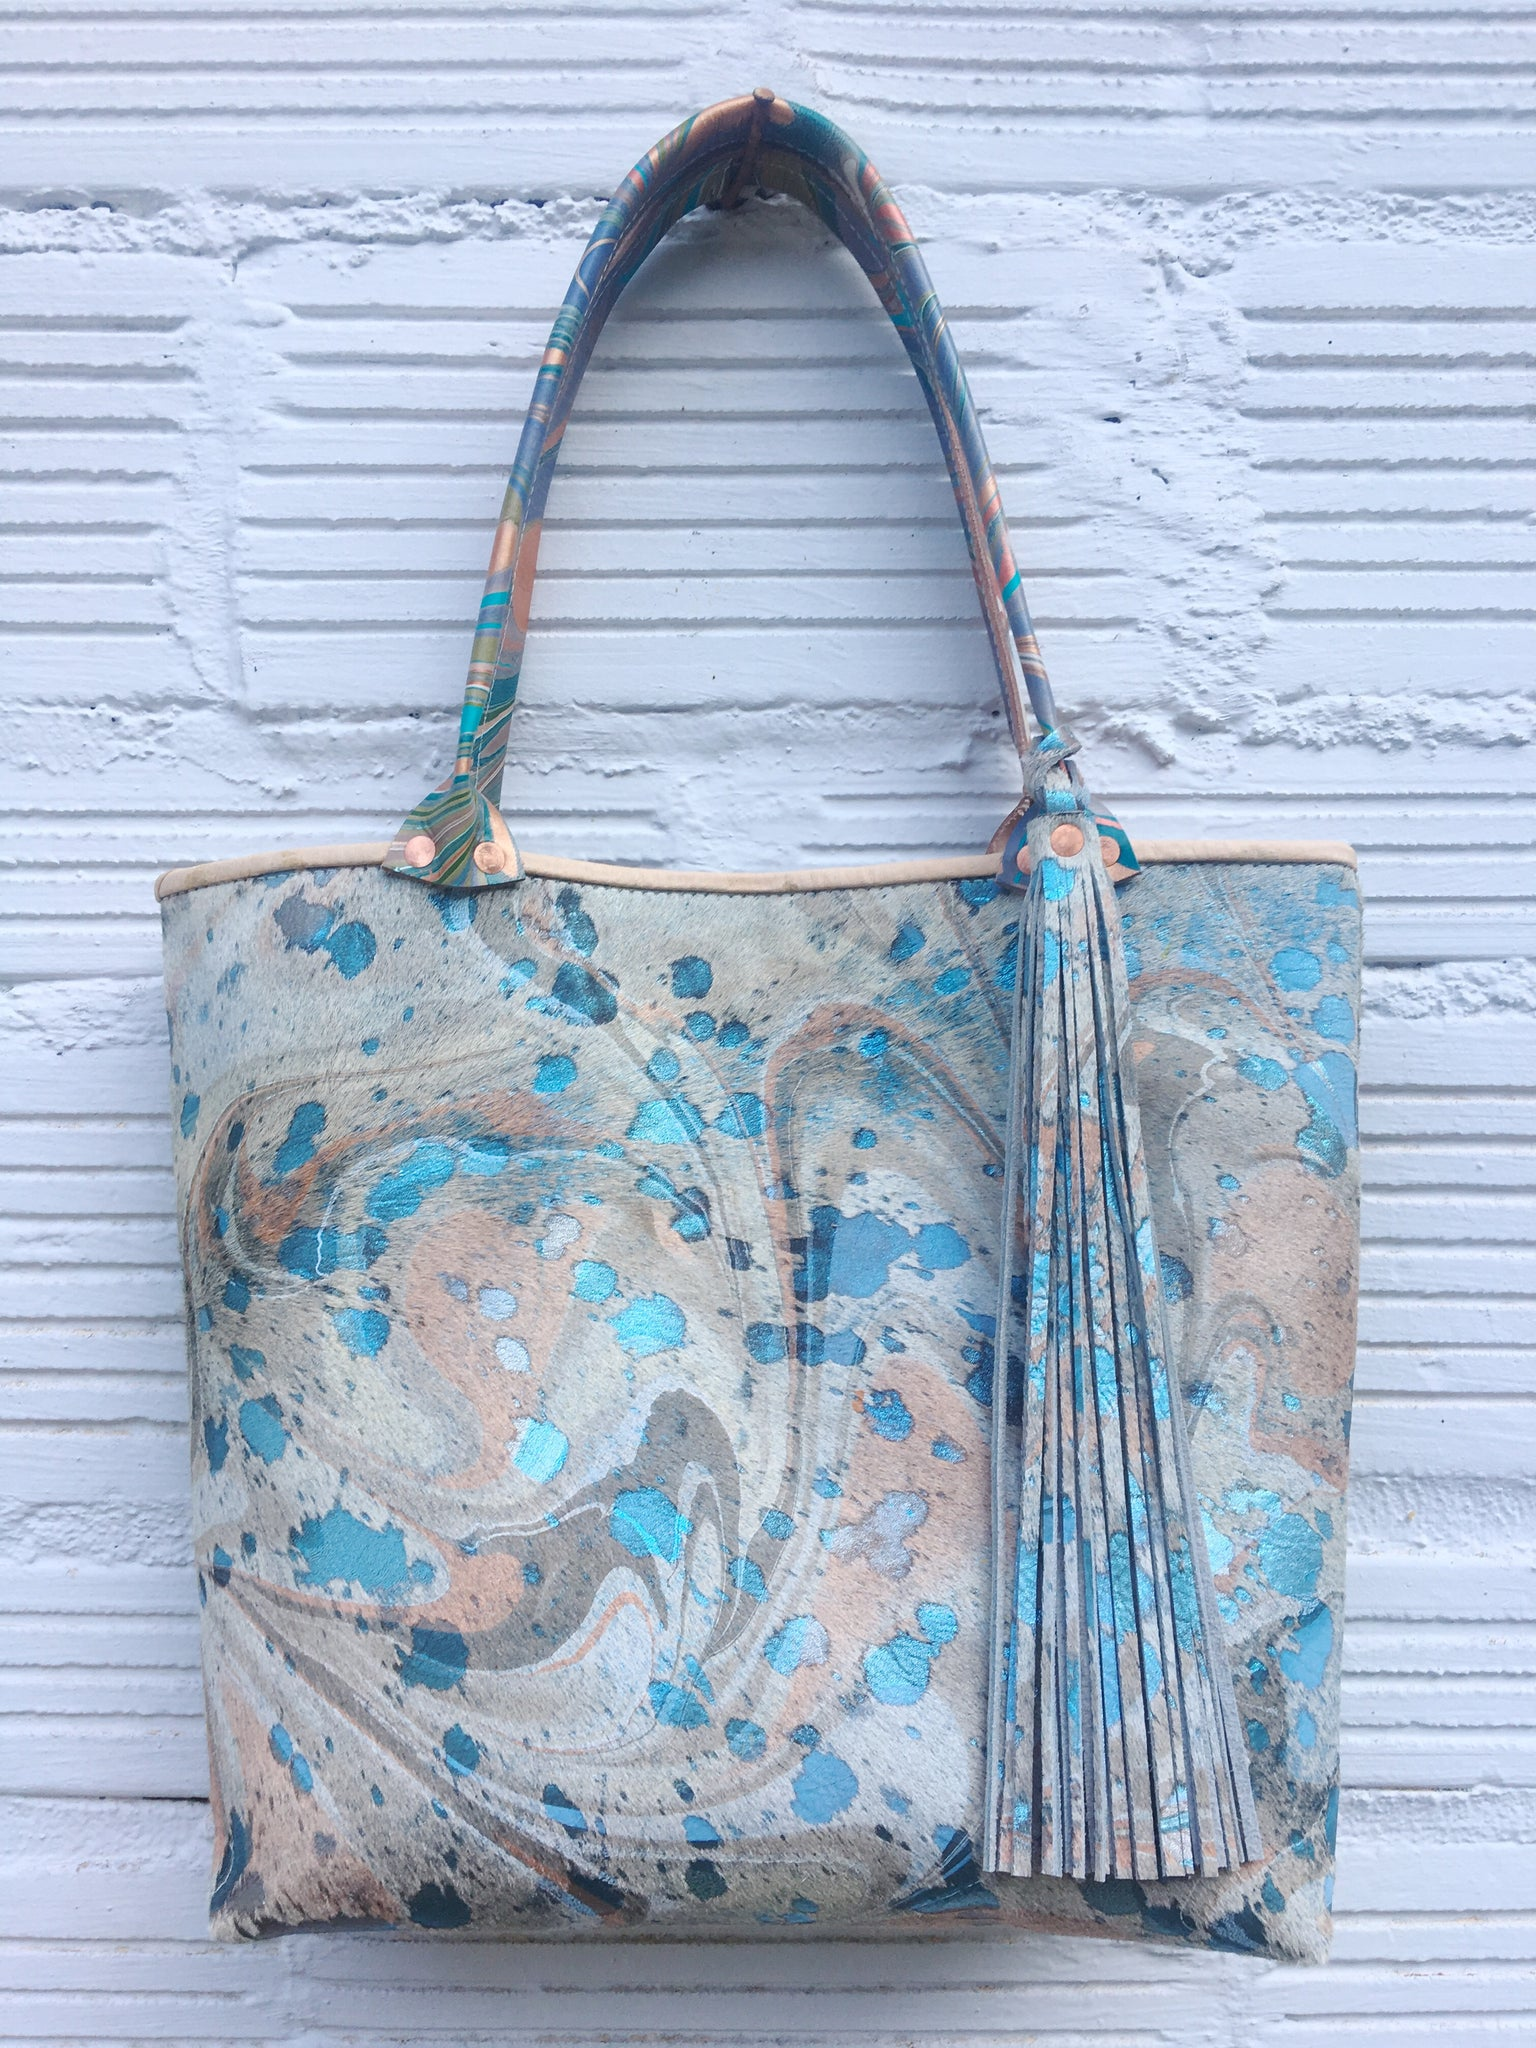 Angelic Hair On Hide Small Tote - No One Alike